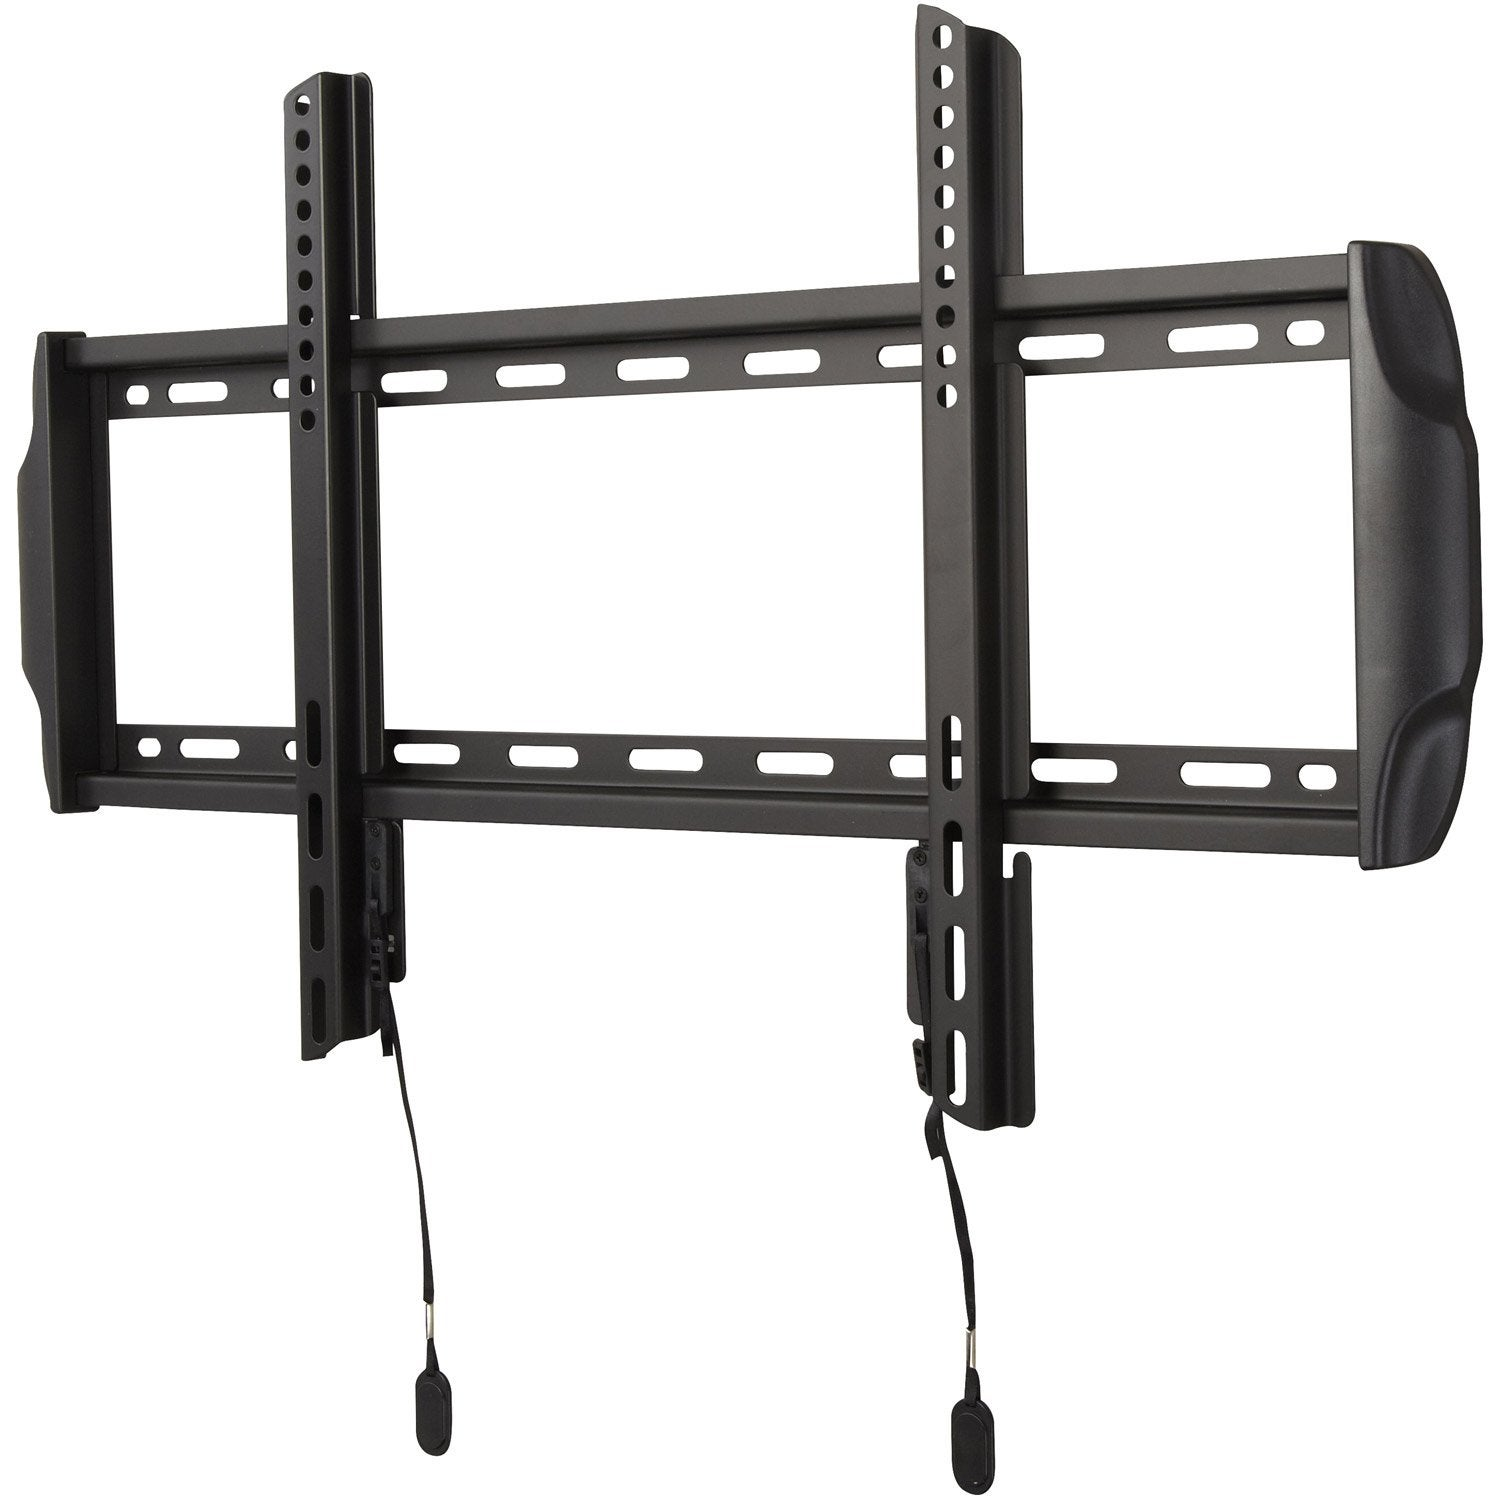 support tv led n oplasma visionic 80 139 cm 45 kg. Black Bedroom Furniture Sets. Home Design Ideas